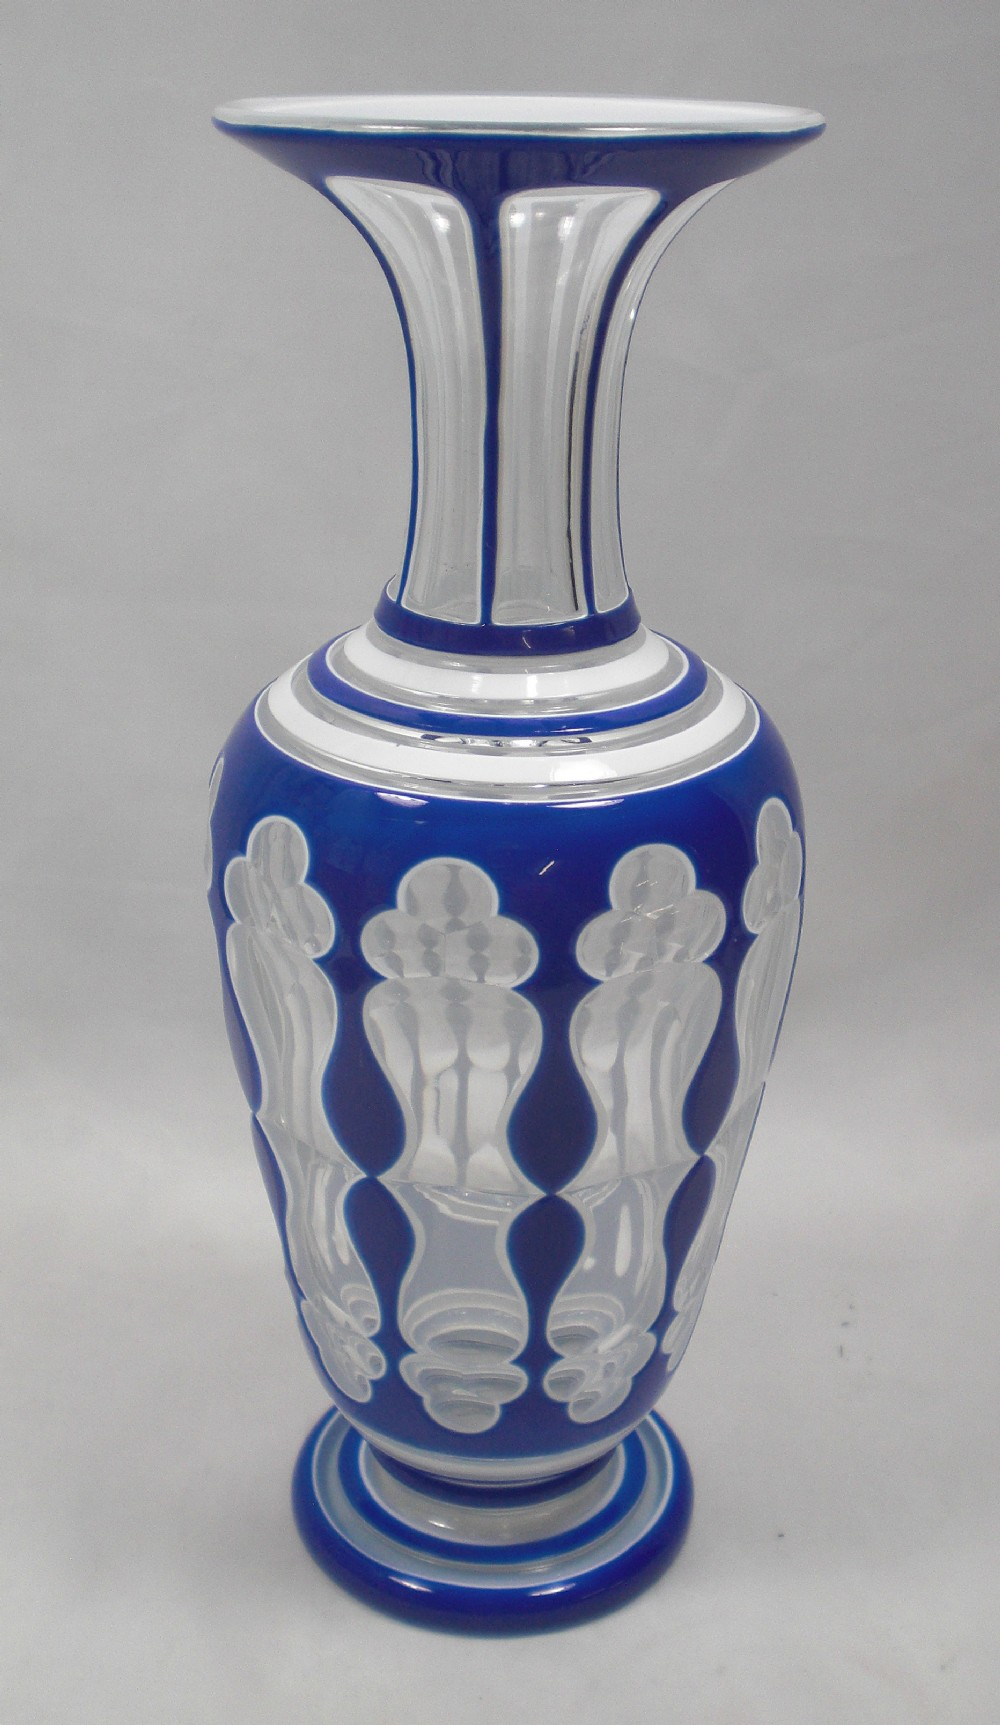 a tall three layer crystal glass vase st louis france c1850